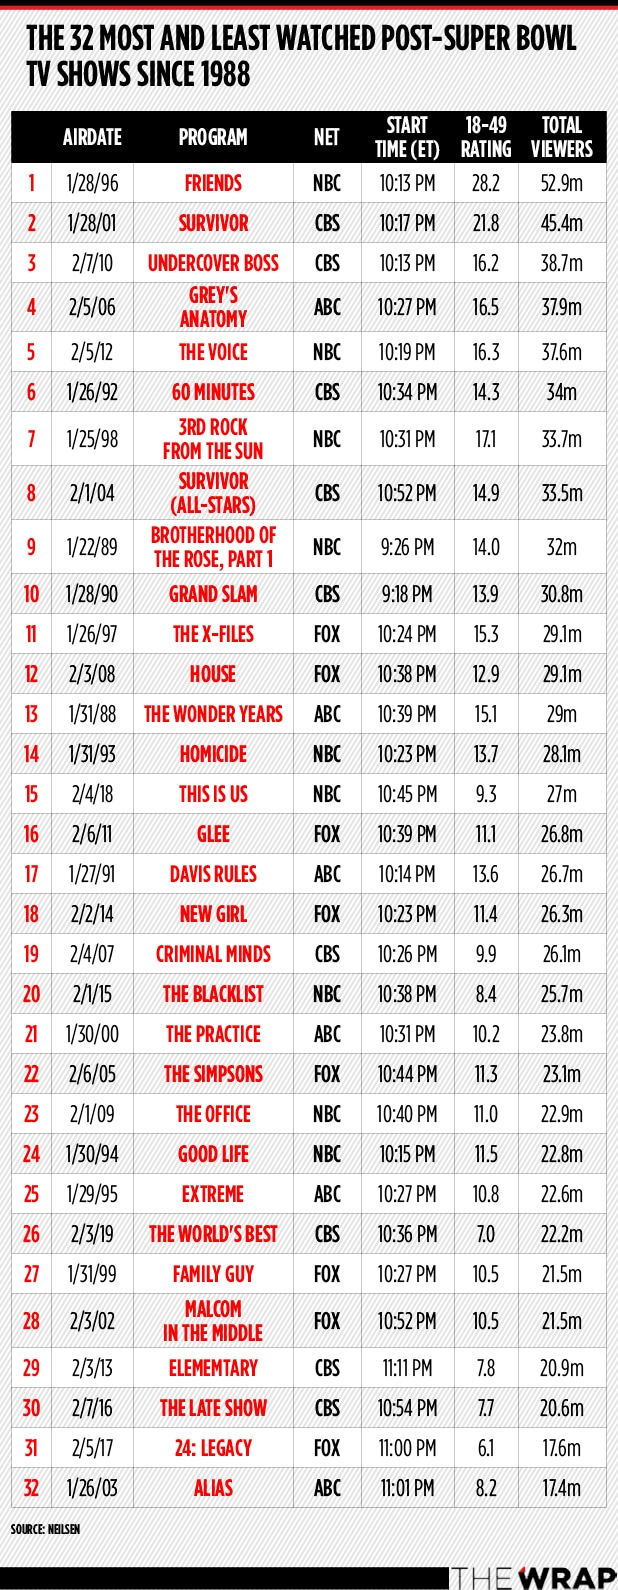 Most Watched Post Super Bowl shows